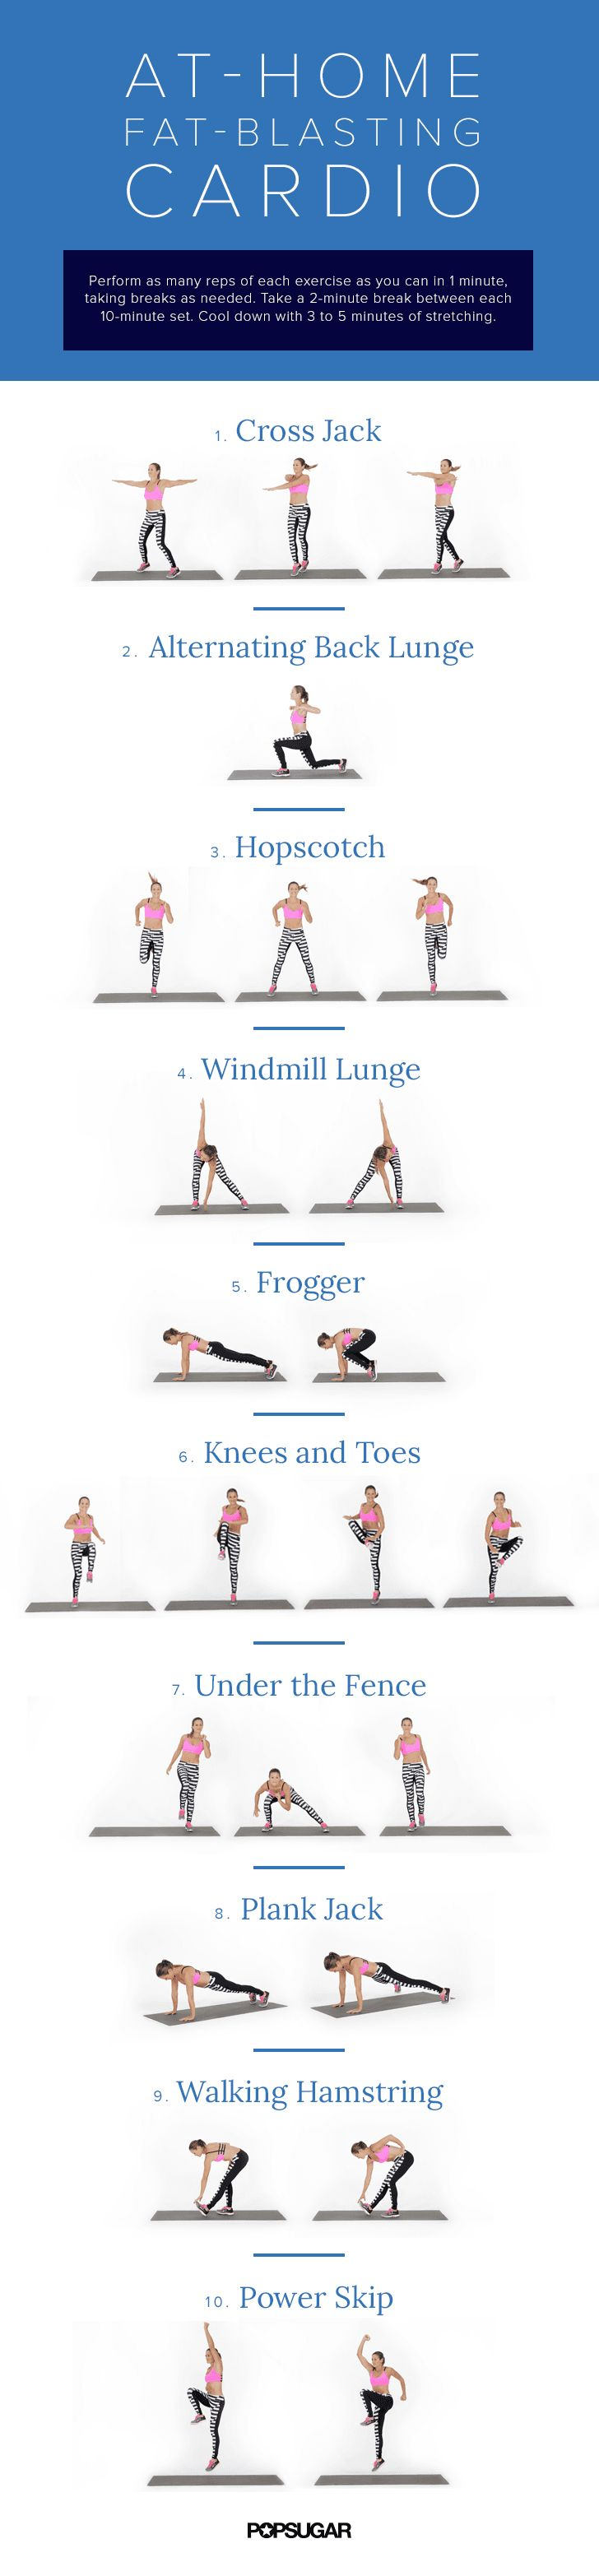 At-Home Cardio Workout | POPSUGAR Fitness